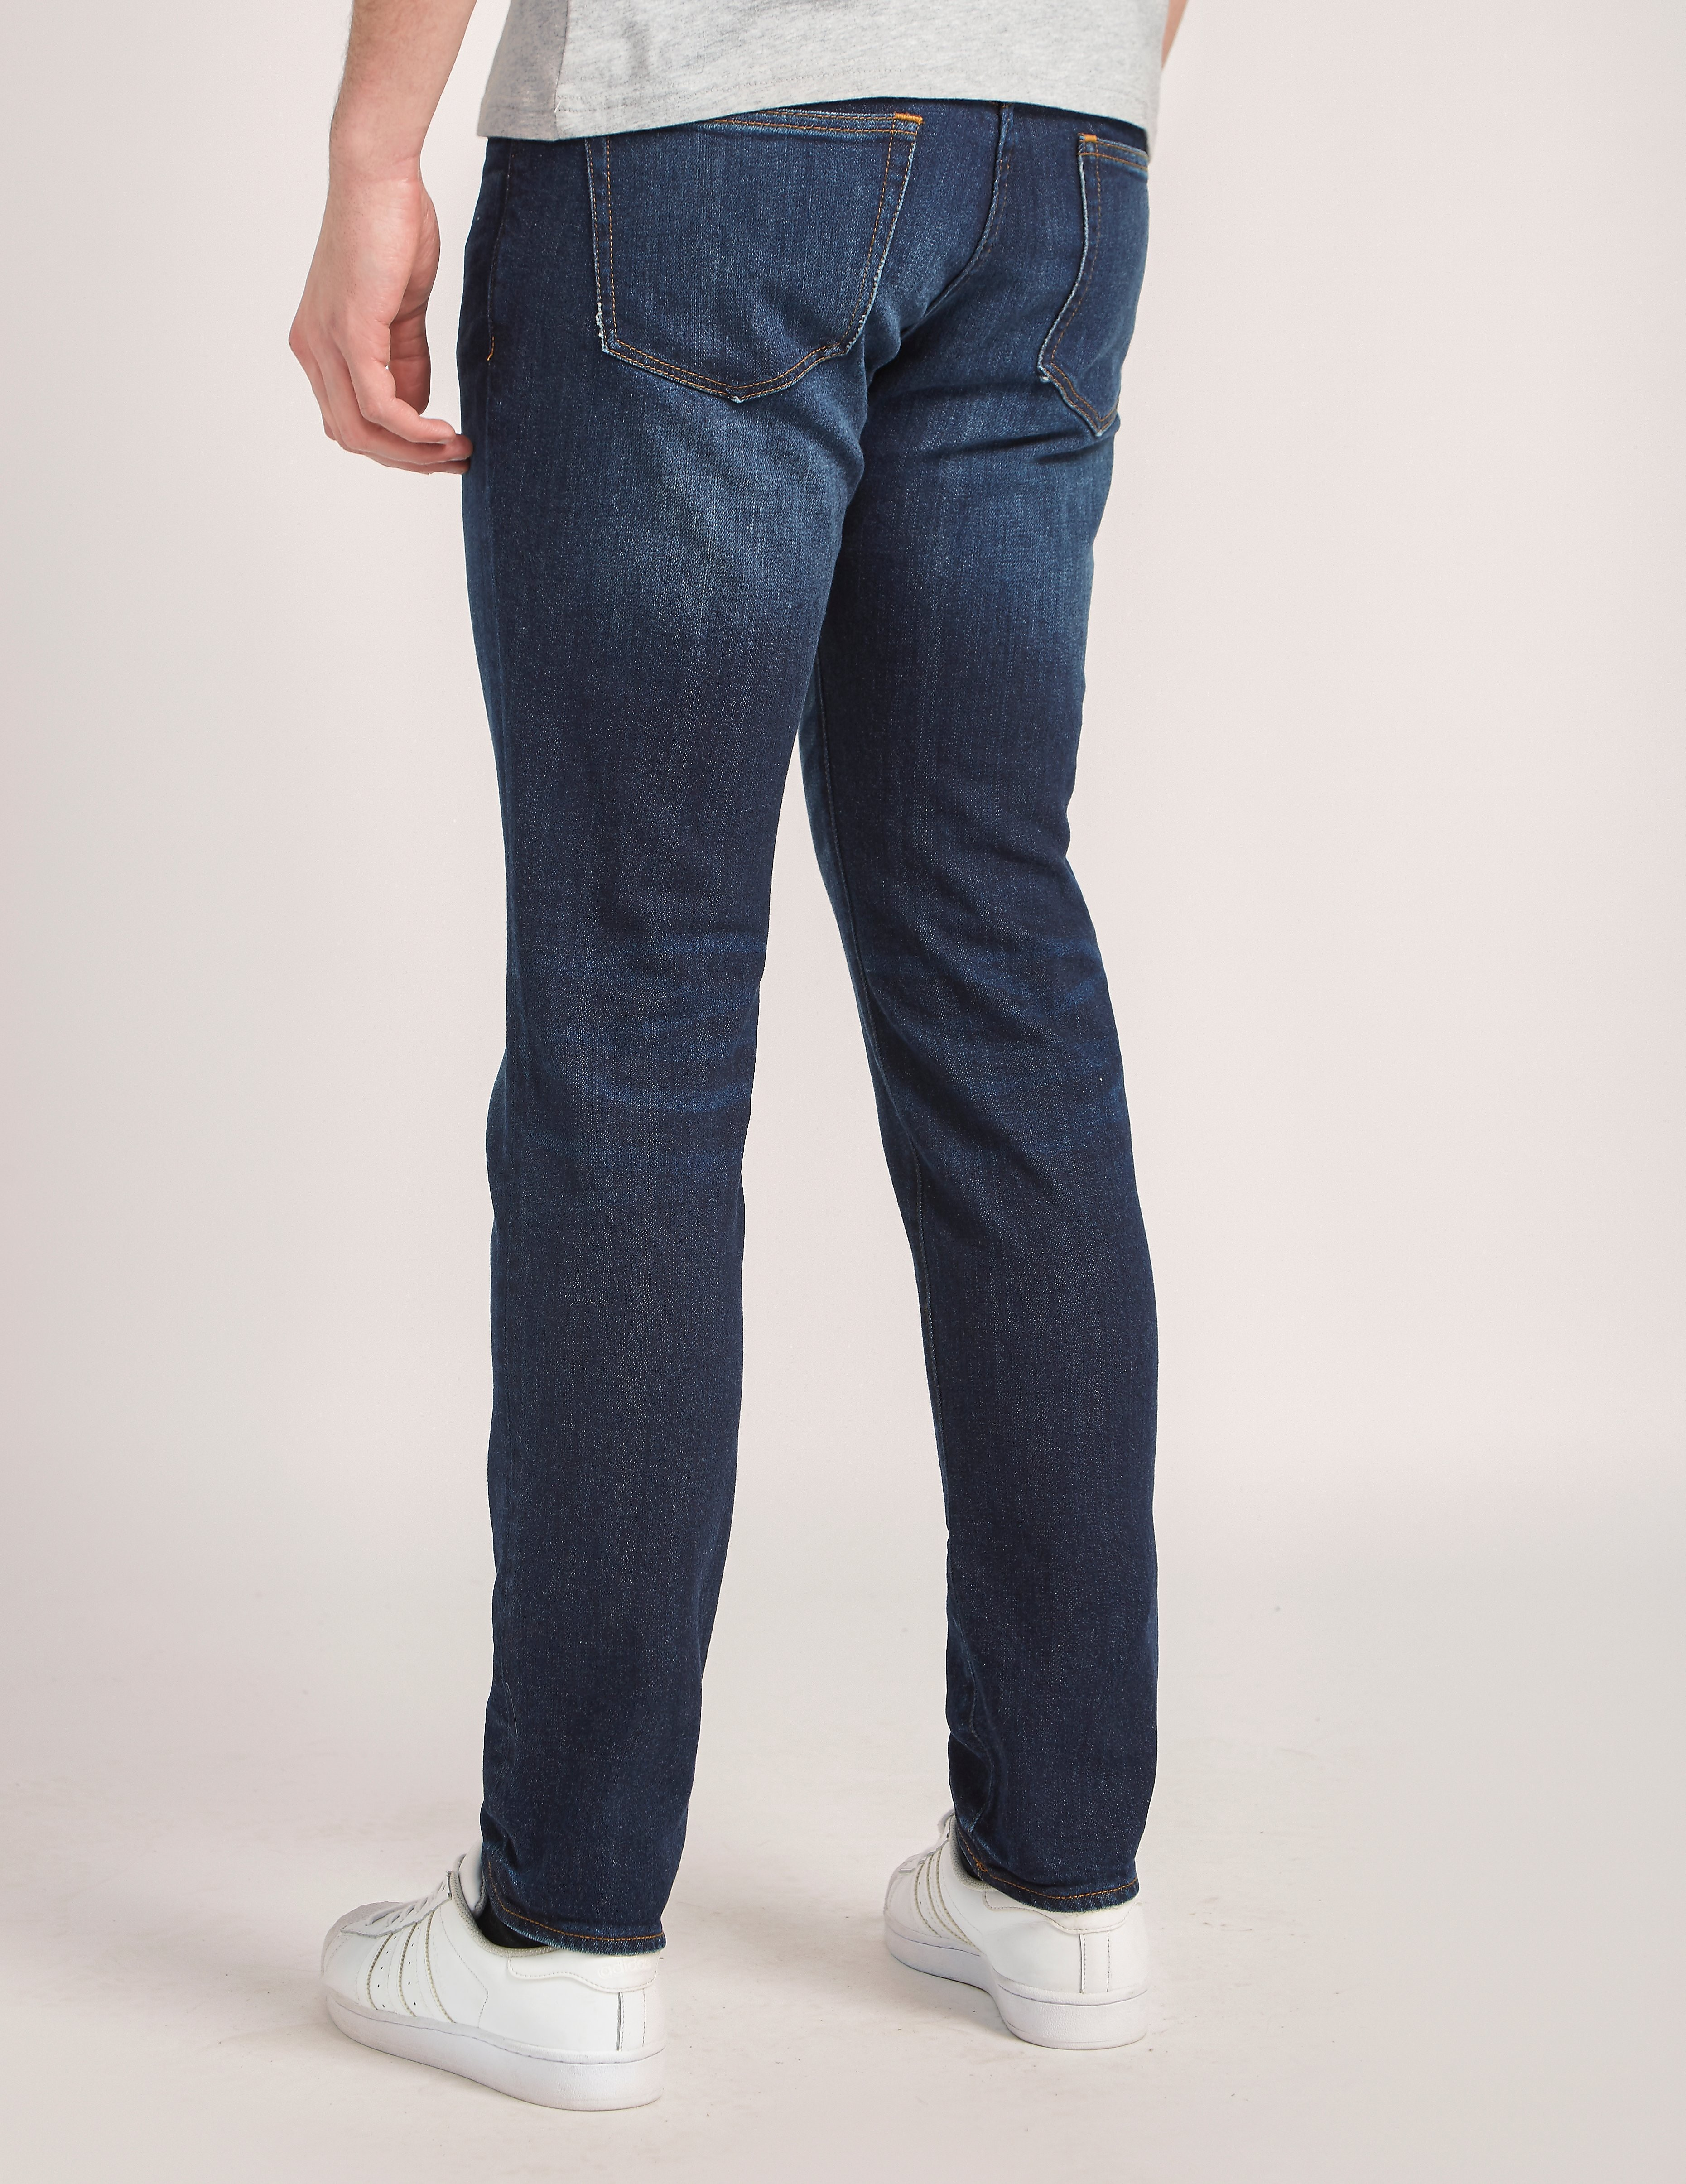 Paul Smith Standard Tapered Jeans